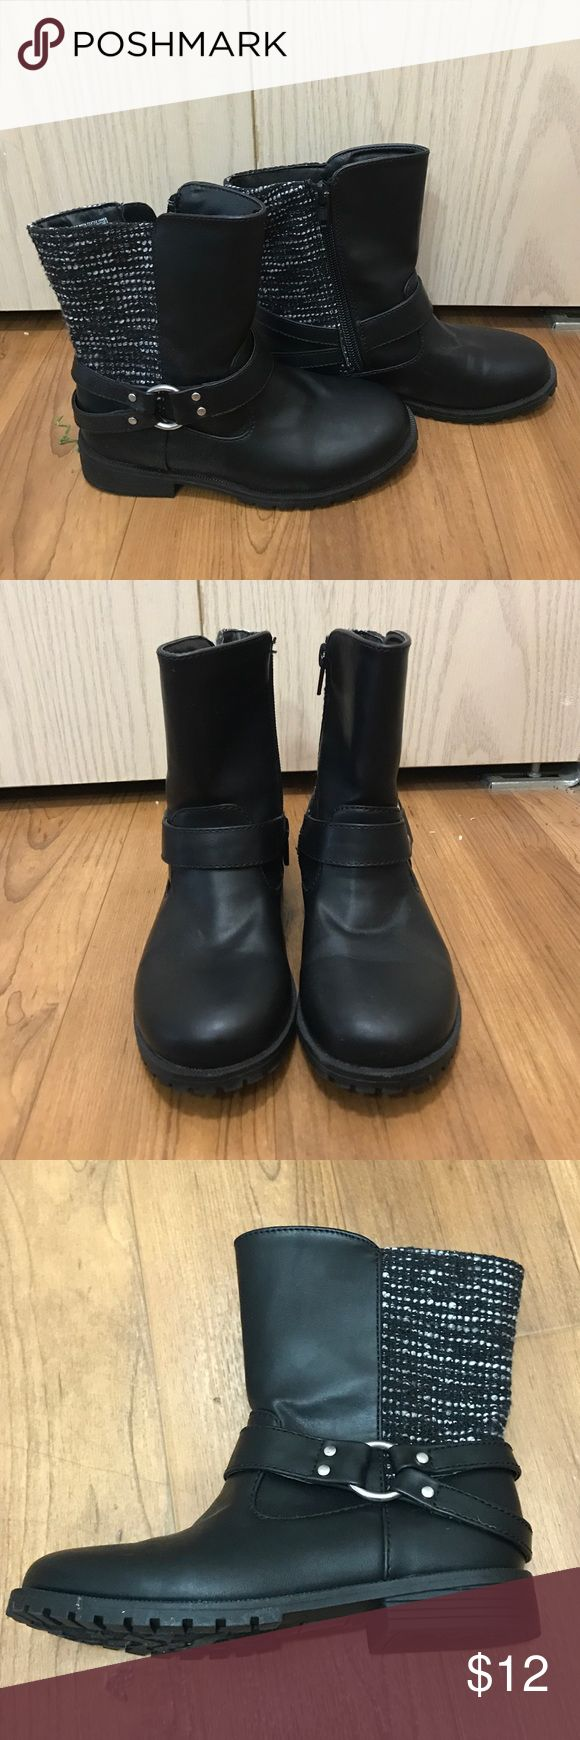 Girl's faux leather zip up boots Super cute toddler girl's zip up faux leather boots. Boots have zippers on the inside and a buckle decision on the outside of the shoe. Faux leather & fabric. Only worn once, in like new condition! Cat & Jack  Shoes Boots